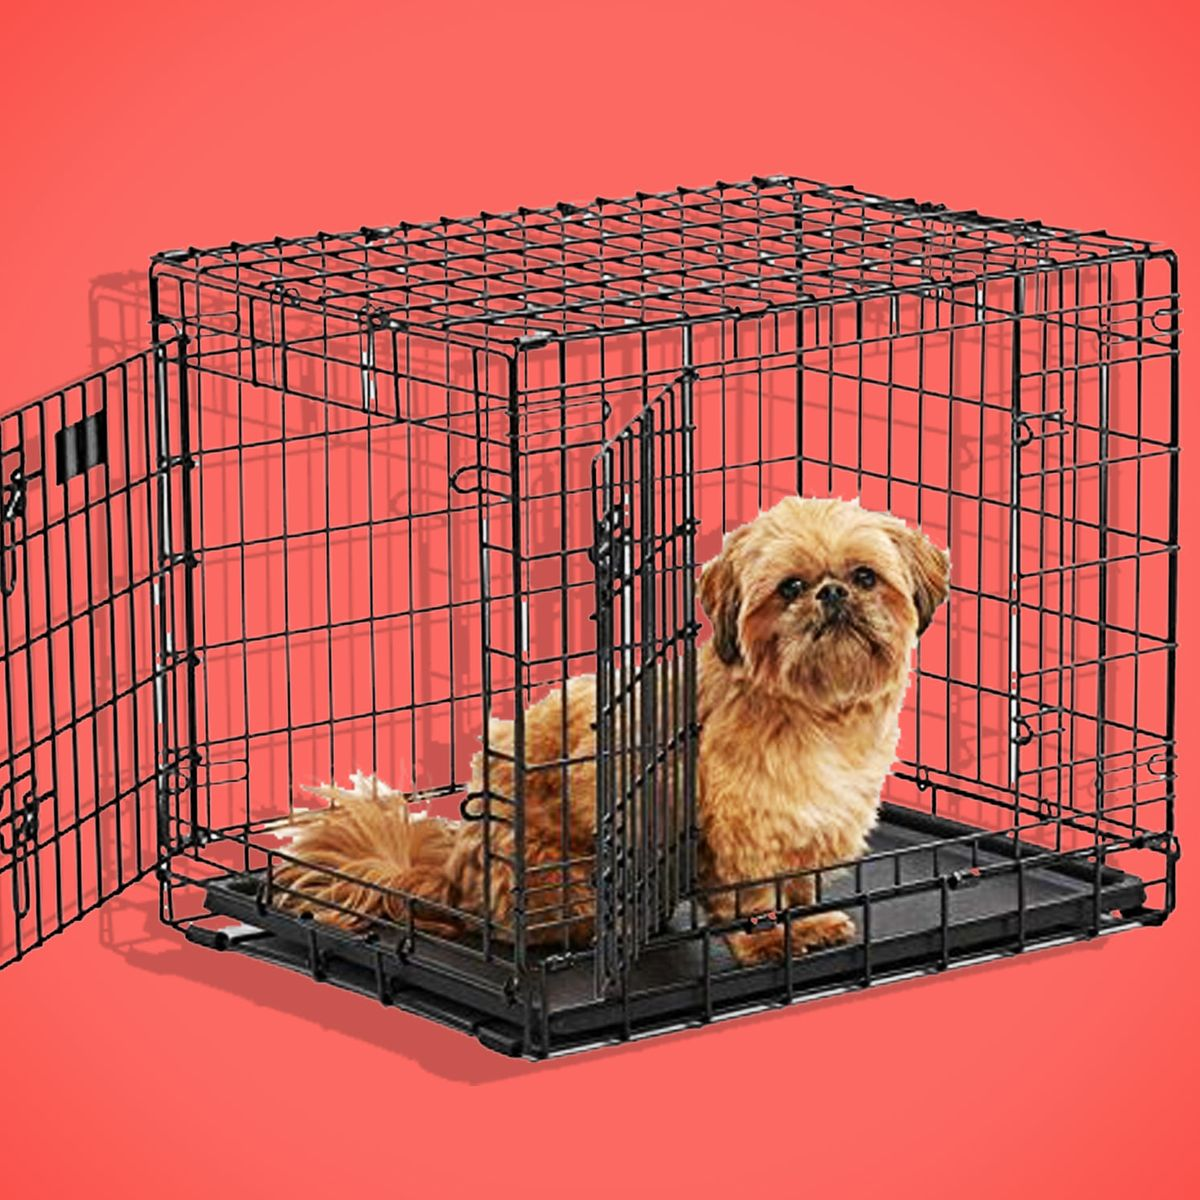 Dog Crate With Bathroom | The 7 Best Dog Crates And Kennels 2018 The Strategist